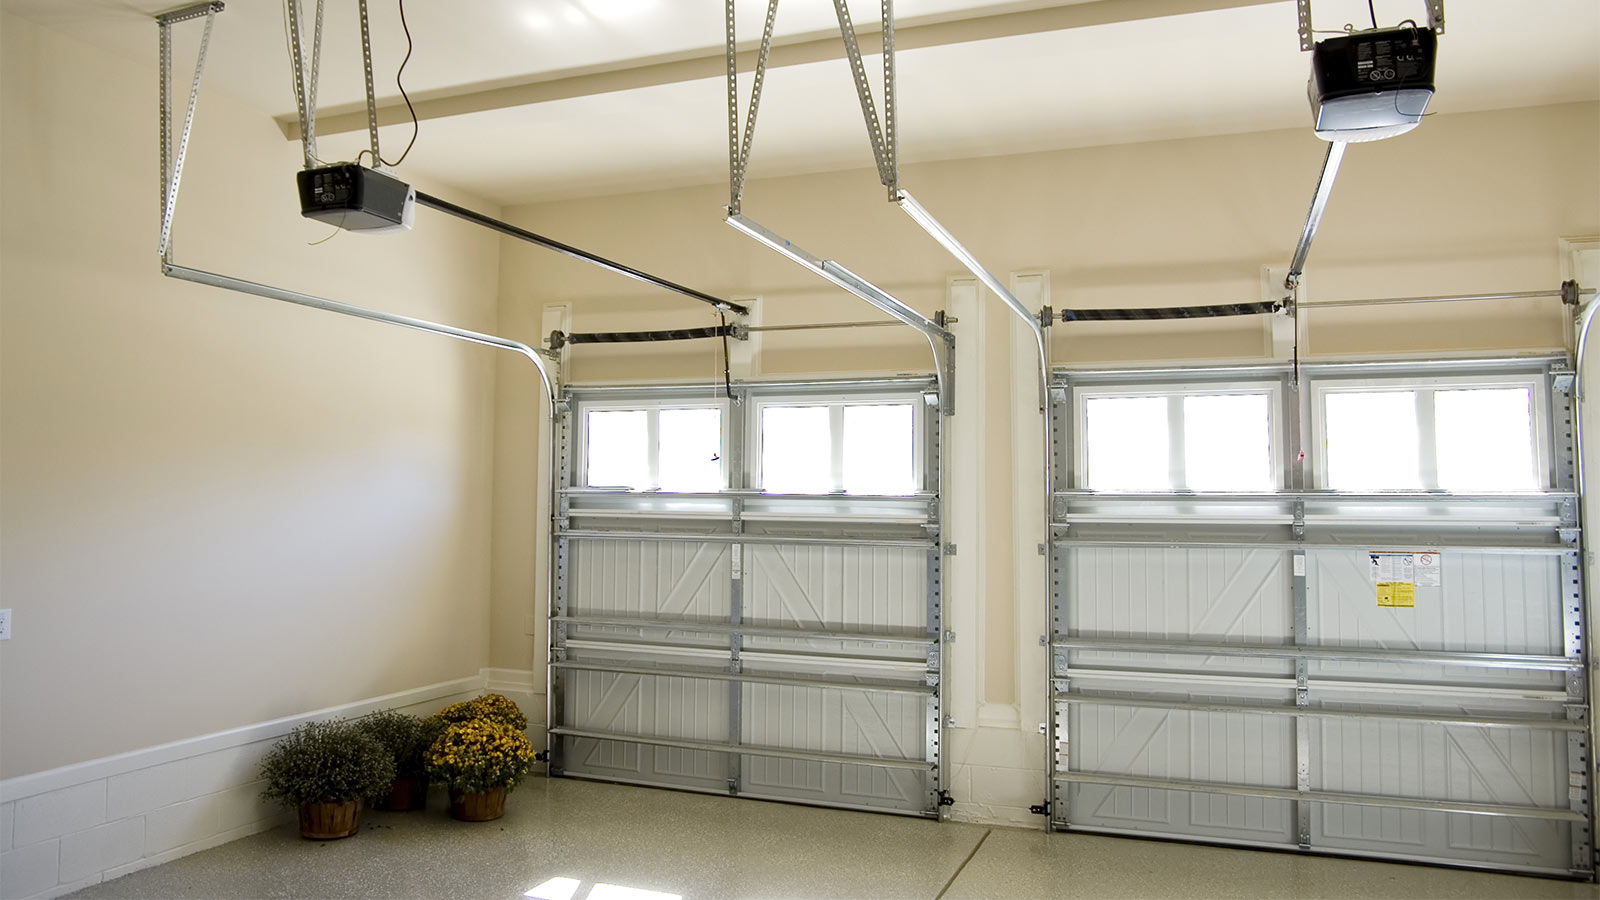 Sectional Garage Doors from Electric Gates Woodford suppliers.